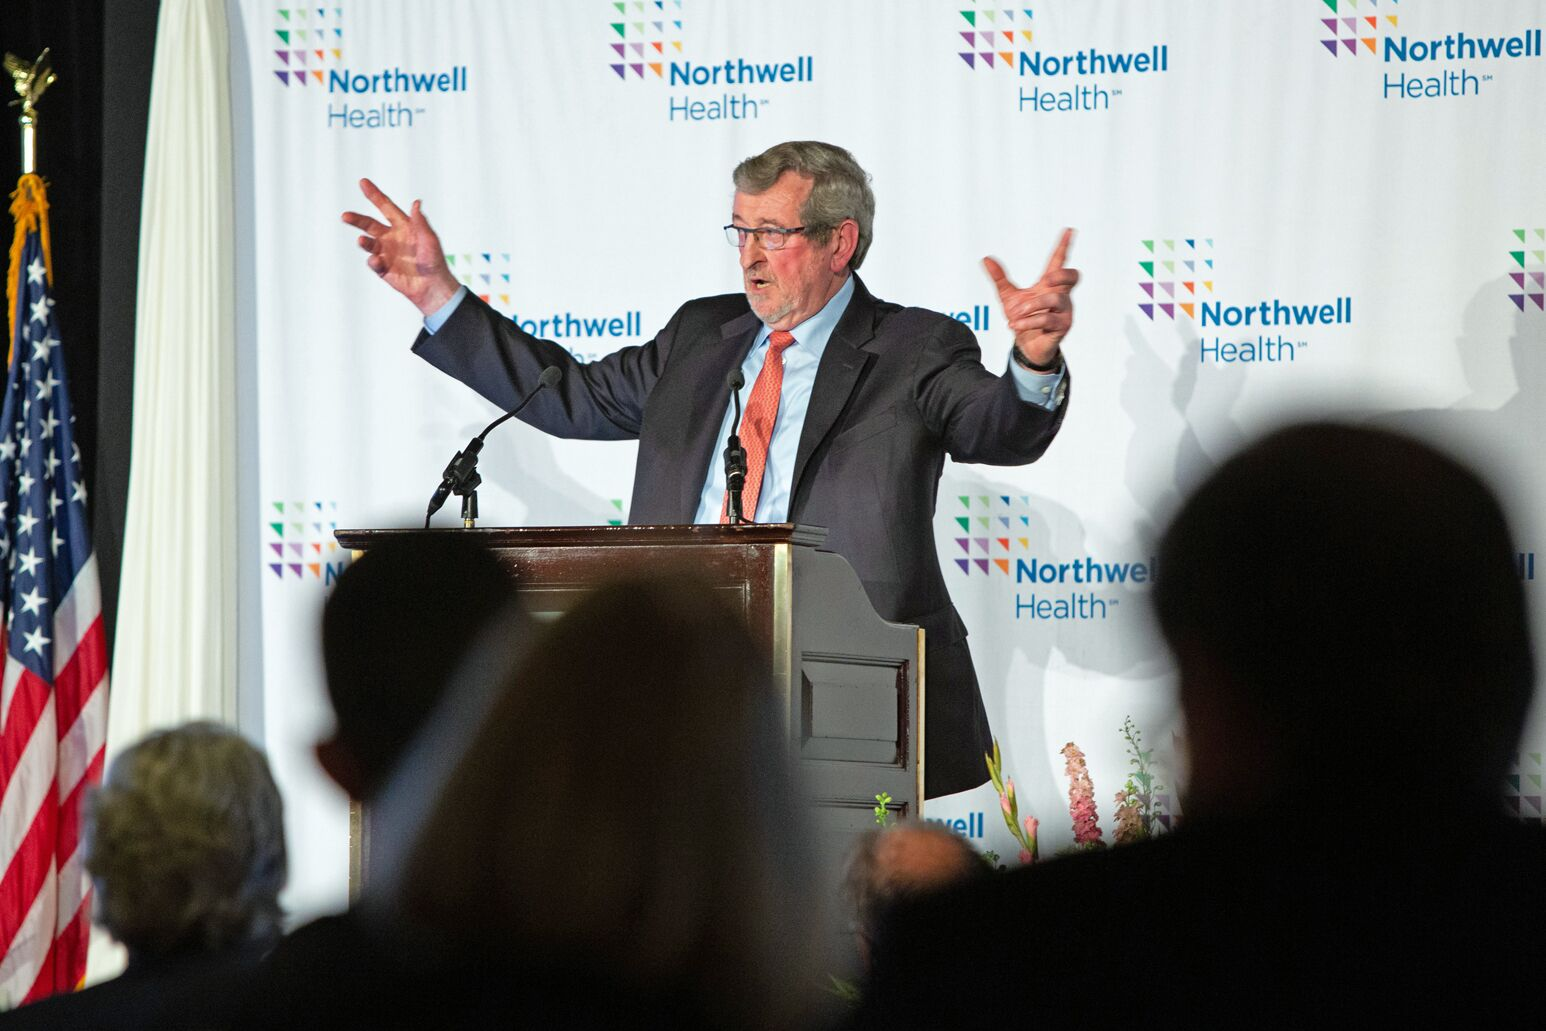 Michael Dowling speaks to trustees, overseers and administration at Northwell's Annual Meeting